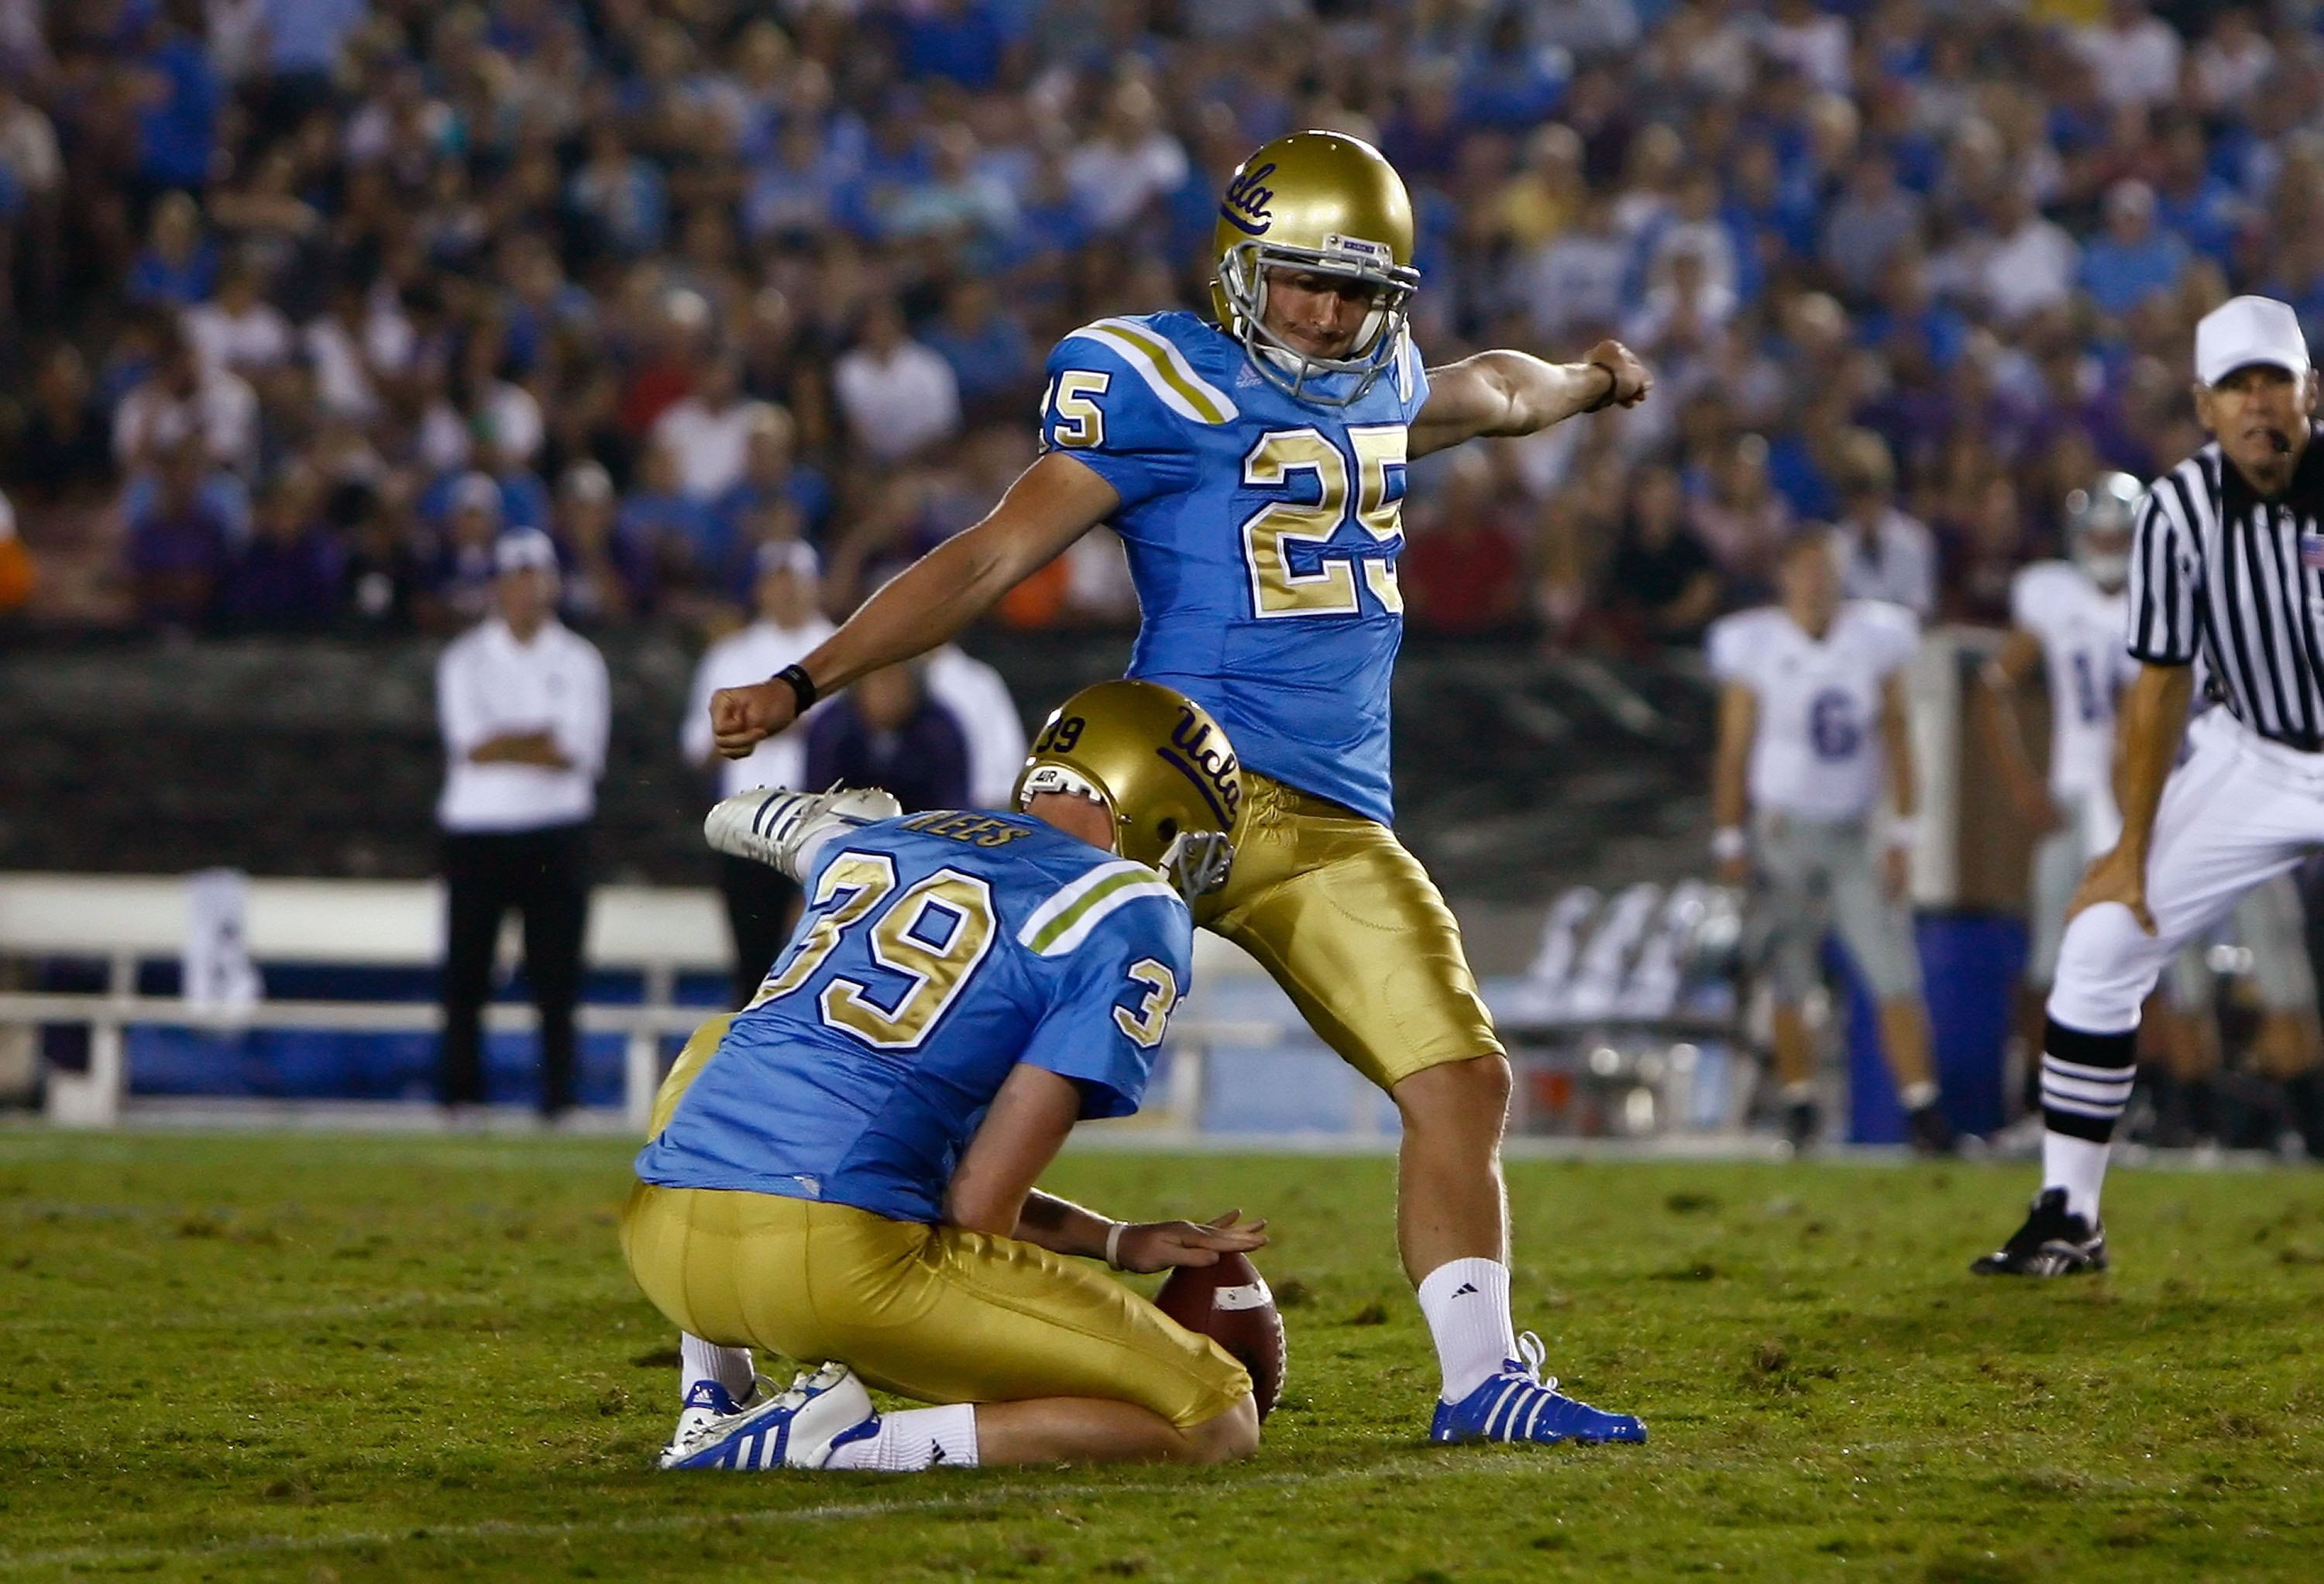 PASADENA, CA - SEPTEMBER 19:  Kai Forbath #25 of the UCLA Bruins kicks as Danny Rees #39 holds against the Kansas State Wildcats at the Rose Bowl on September 19, 2009 in Pasadena, California. UCLA defeated Kansas State 23-9.  (Photo by Jeff Gross/Getty I